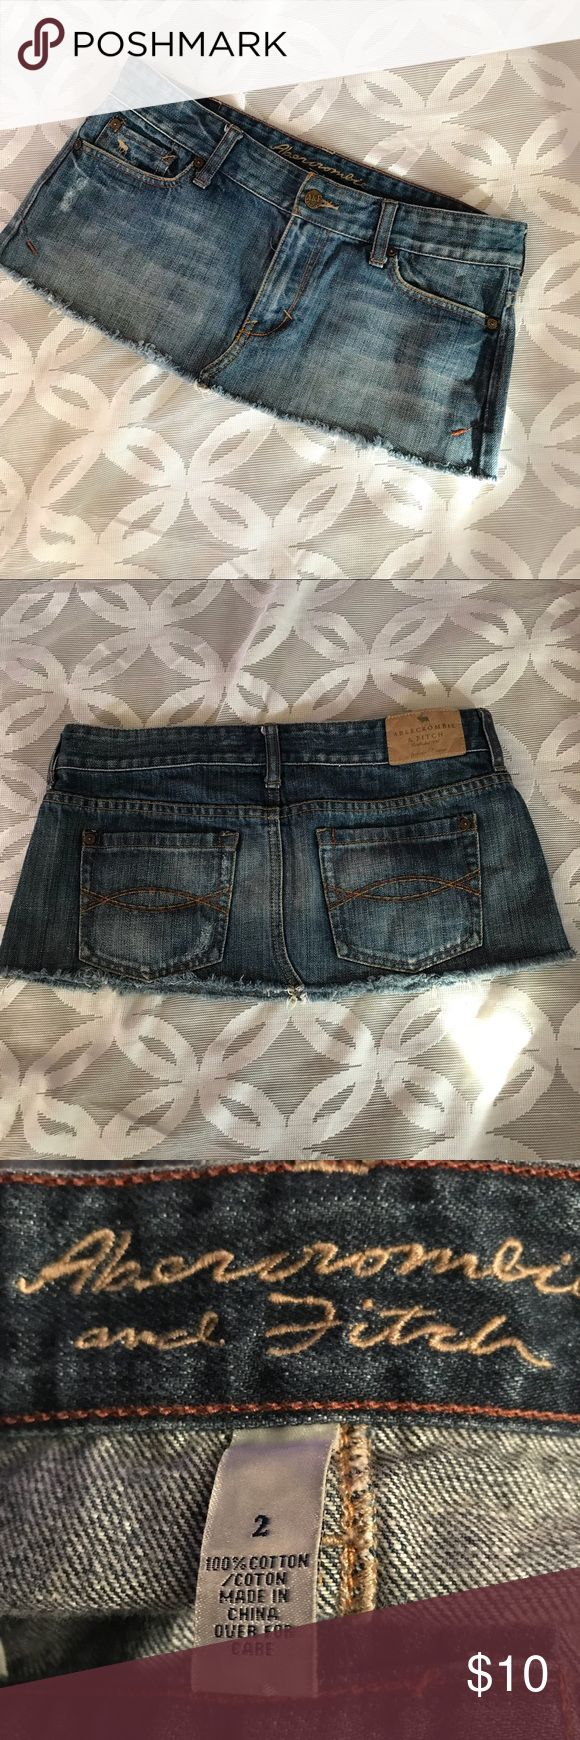 """Abercrombie and Fitch Denim Mini Skirt Size 2 Abercrombie and Fitch Denim Mini Skirt Size 2 - Good Condition, See Pictures!   Measurements Laying Flat Size 🔹 2 Waist 🔹 15"""" Length 🔹8.5 Bundle to Save 🤓 Sorry NO outside transactions 🚫 Reasonable Offers welcomed 👍 NO Low balling 👎 NO modeling 👎 All items from a pet 😼and Smoke Free Home  Happy Poshing 🤗 Abercrombie & Fitch Skirts Mini"""